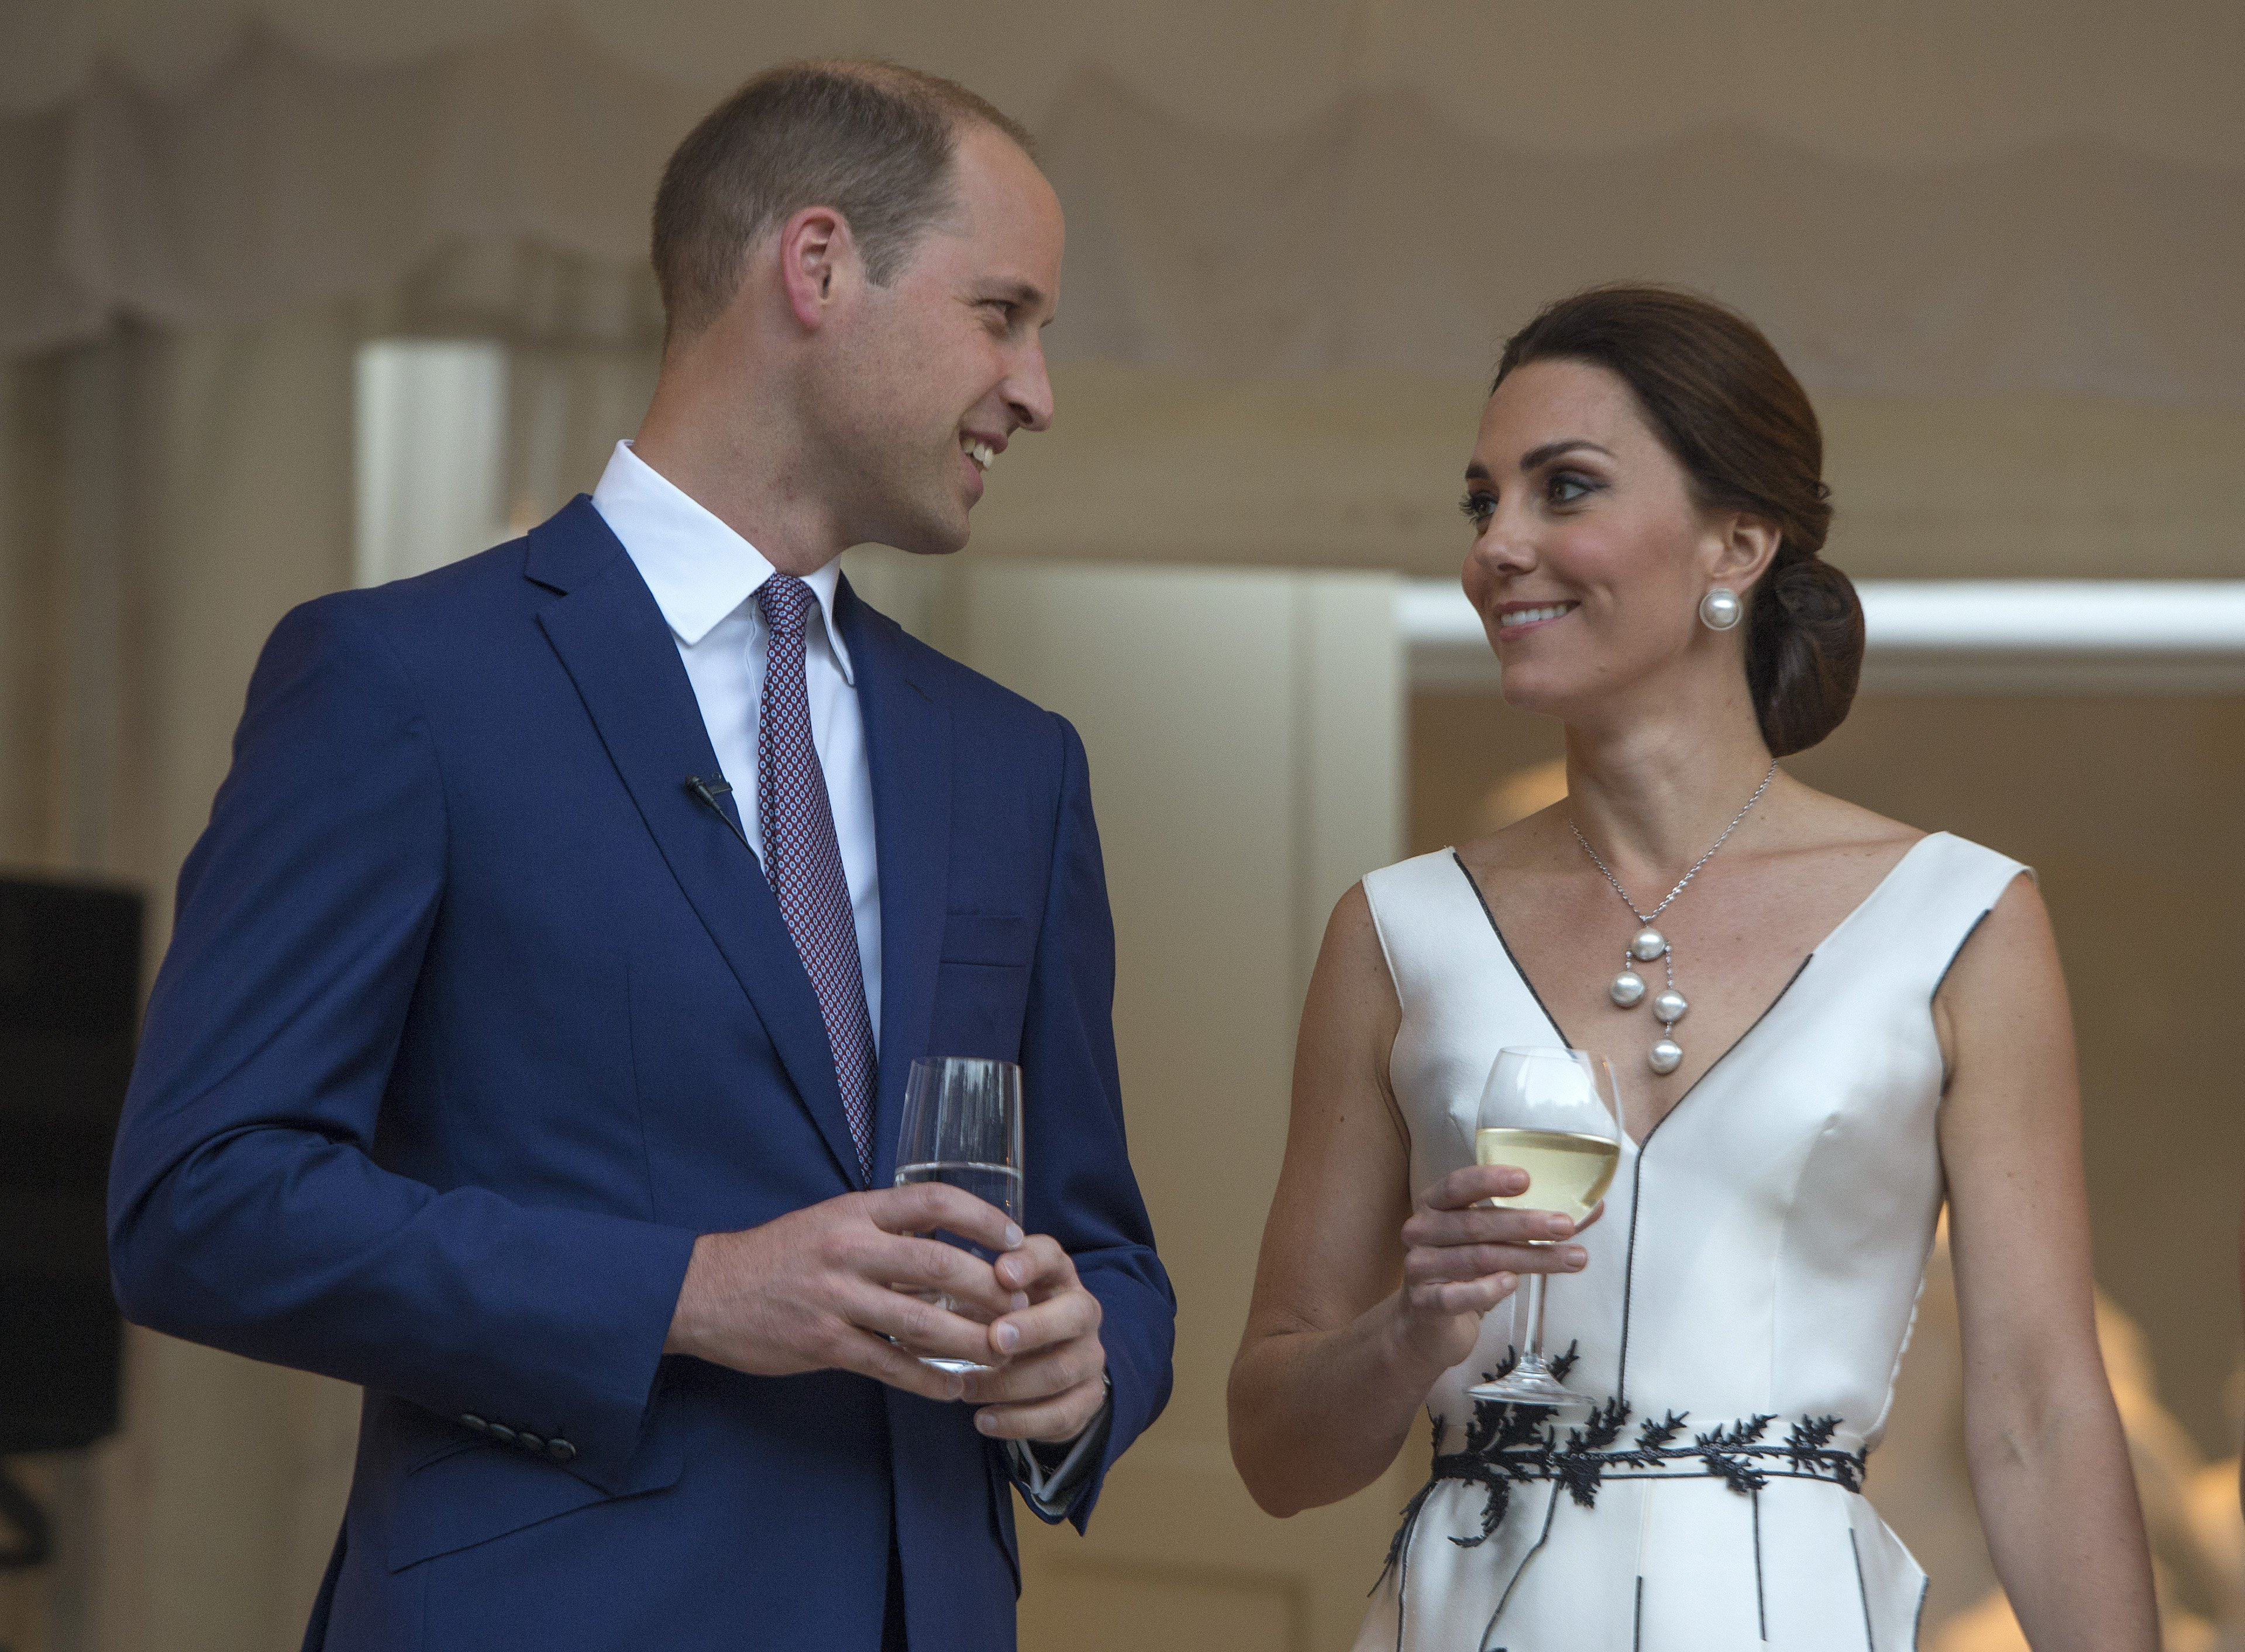 Prince William, Duke of Cambridge and Catherine, Duchess of Cambridge prepare for a toast at the Orangery on July 17, 2017 in Warsaw